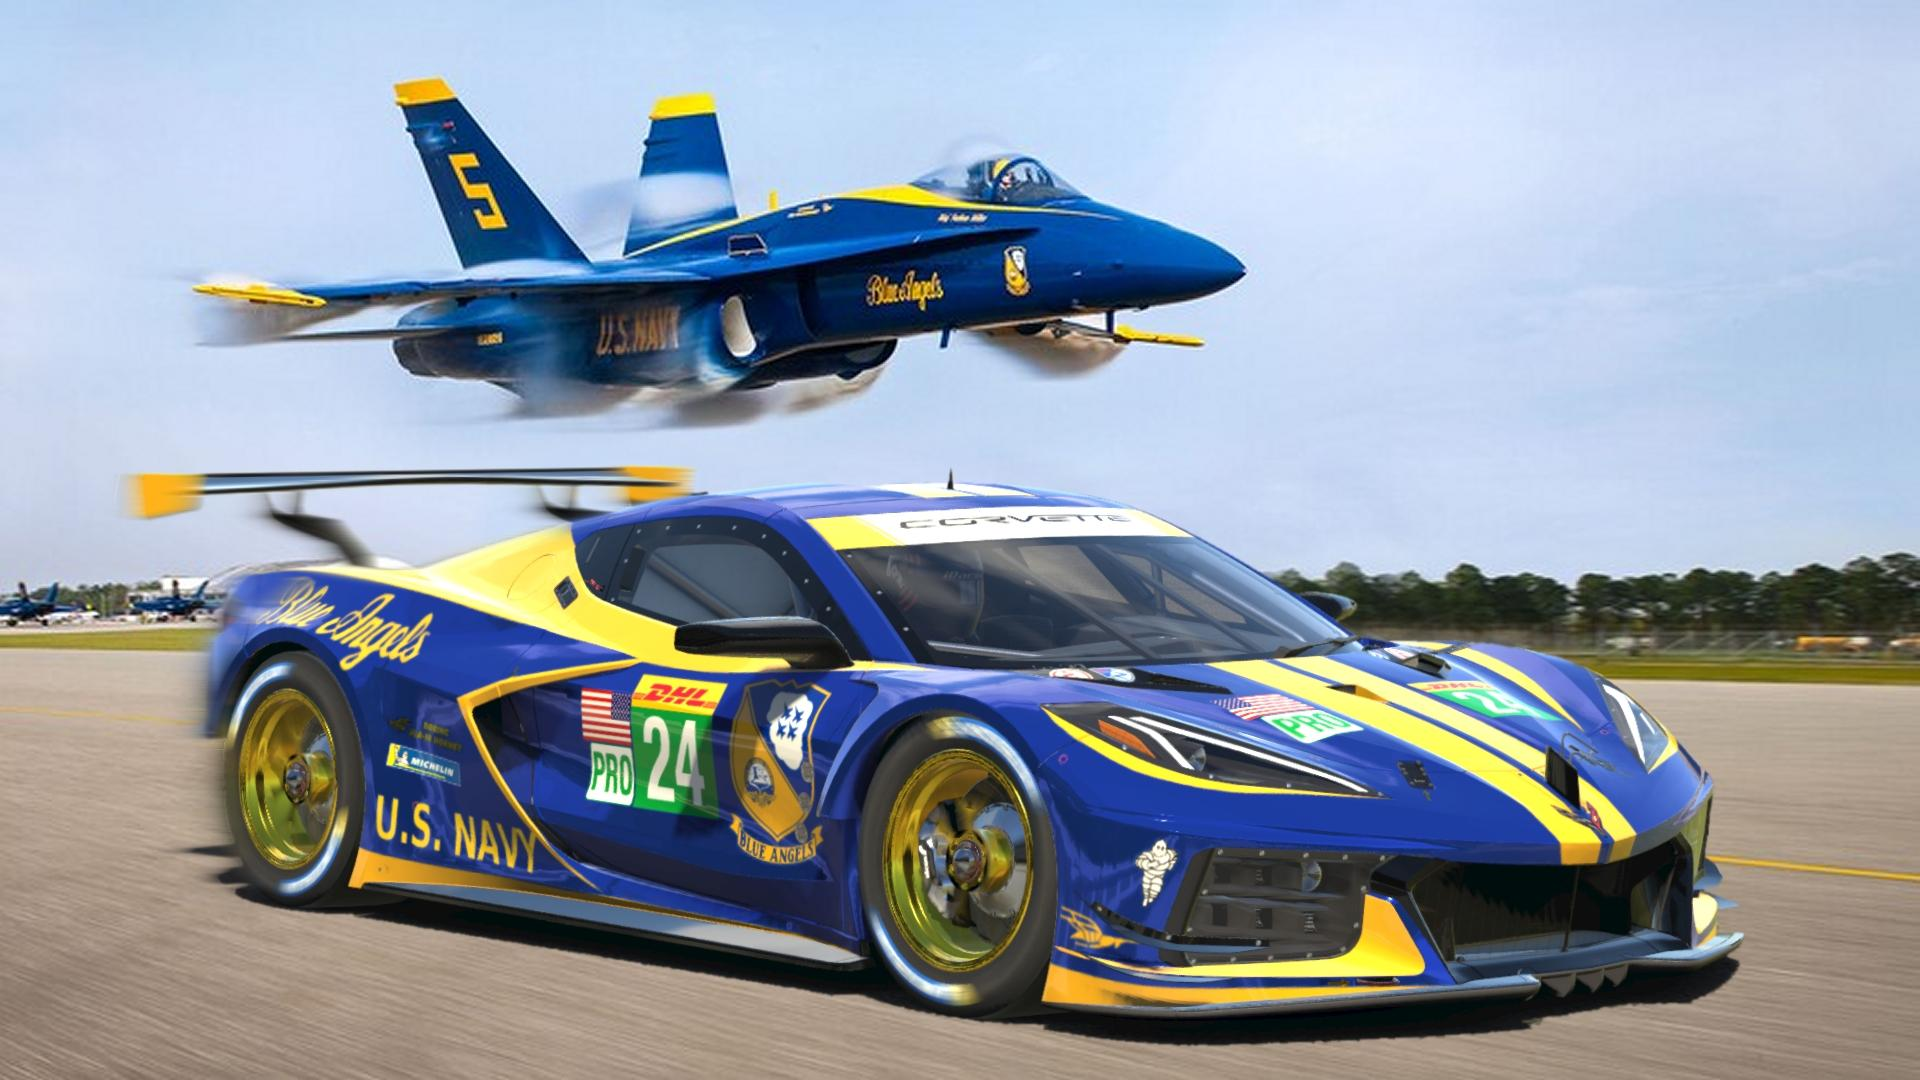 Preview of Chevrolet Corvette C8R Blue Angels by Don Craig